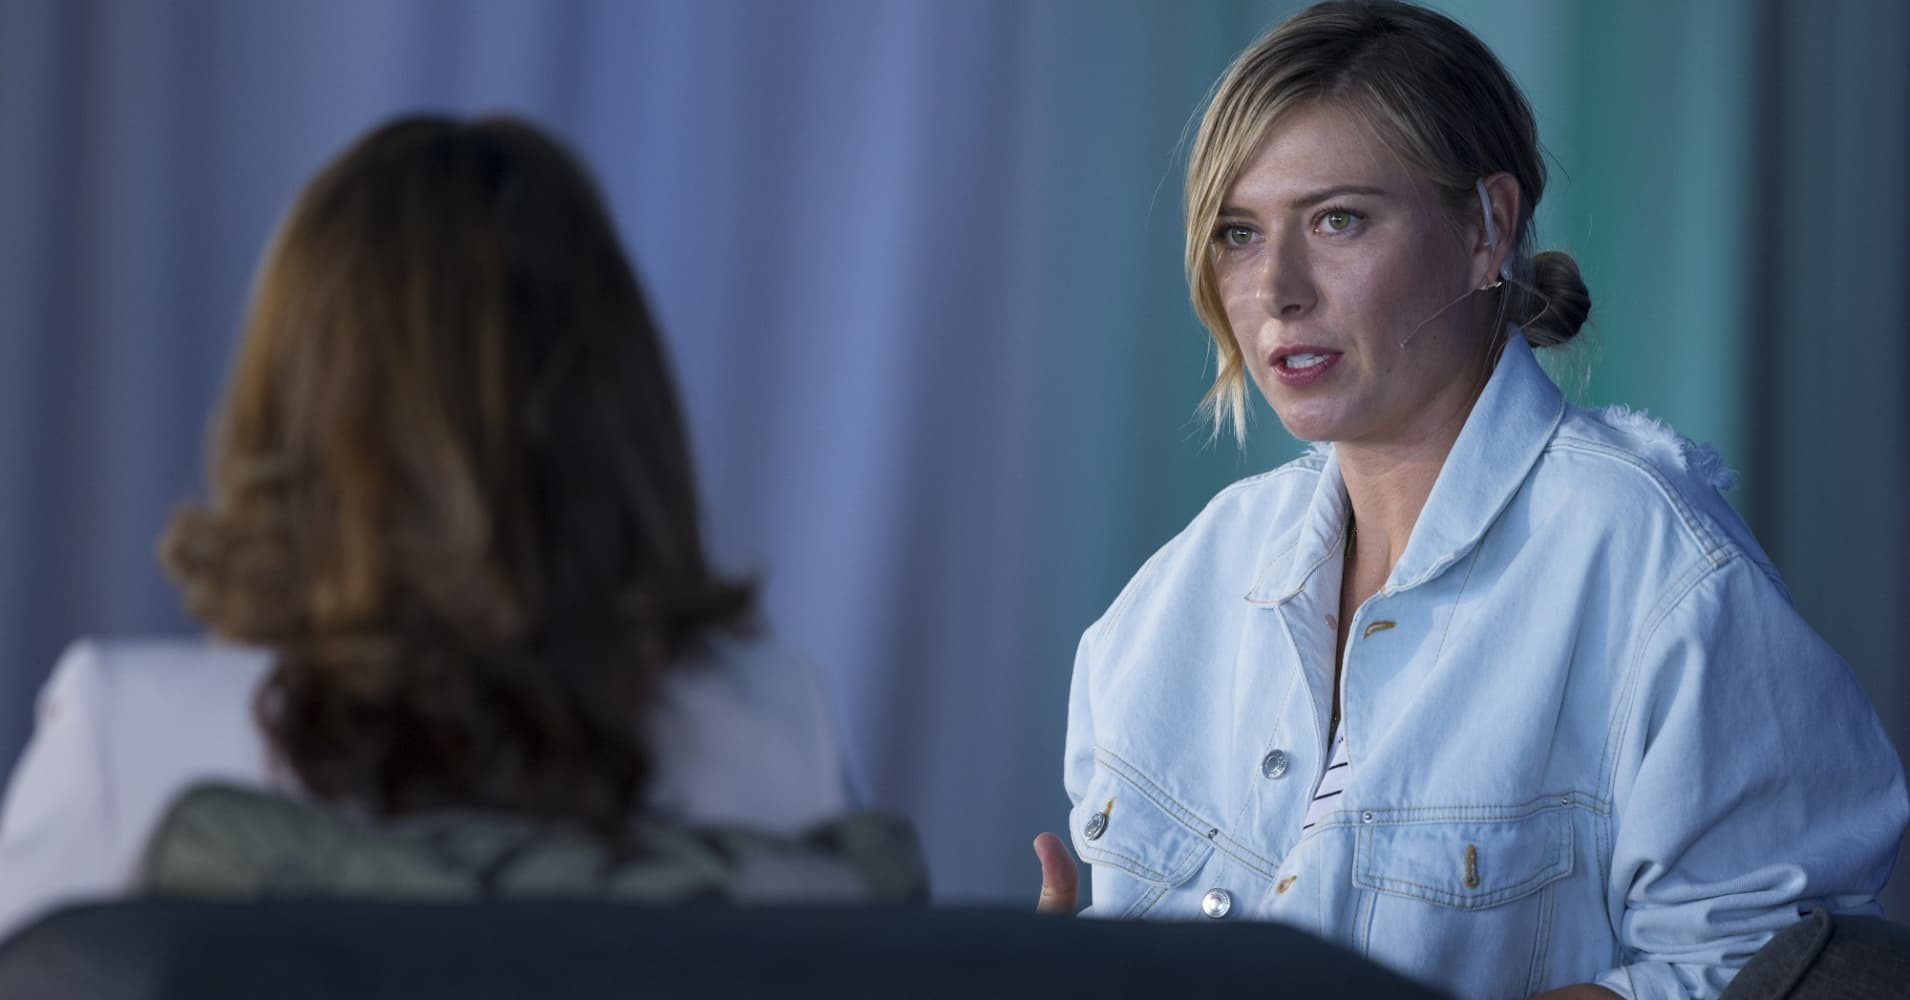 Maria Sharapova speaking at the ANA Inspiring Women in Sports conference.